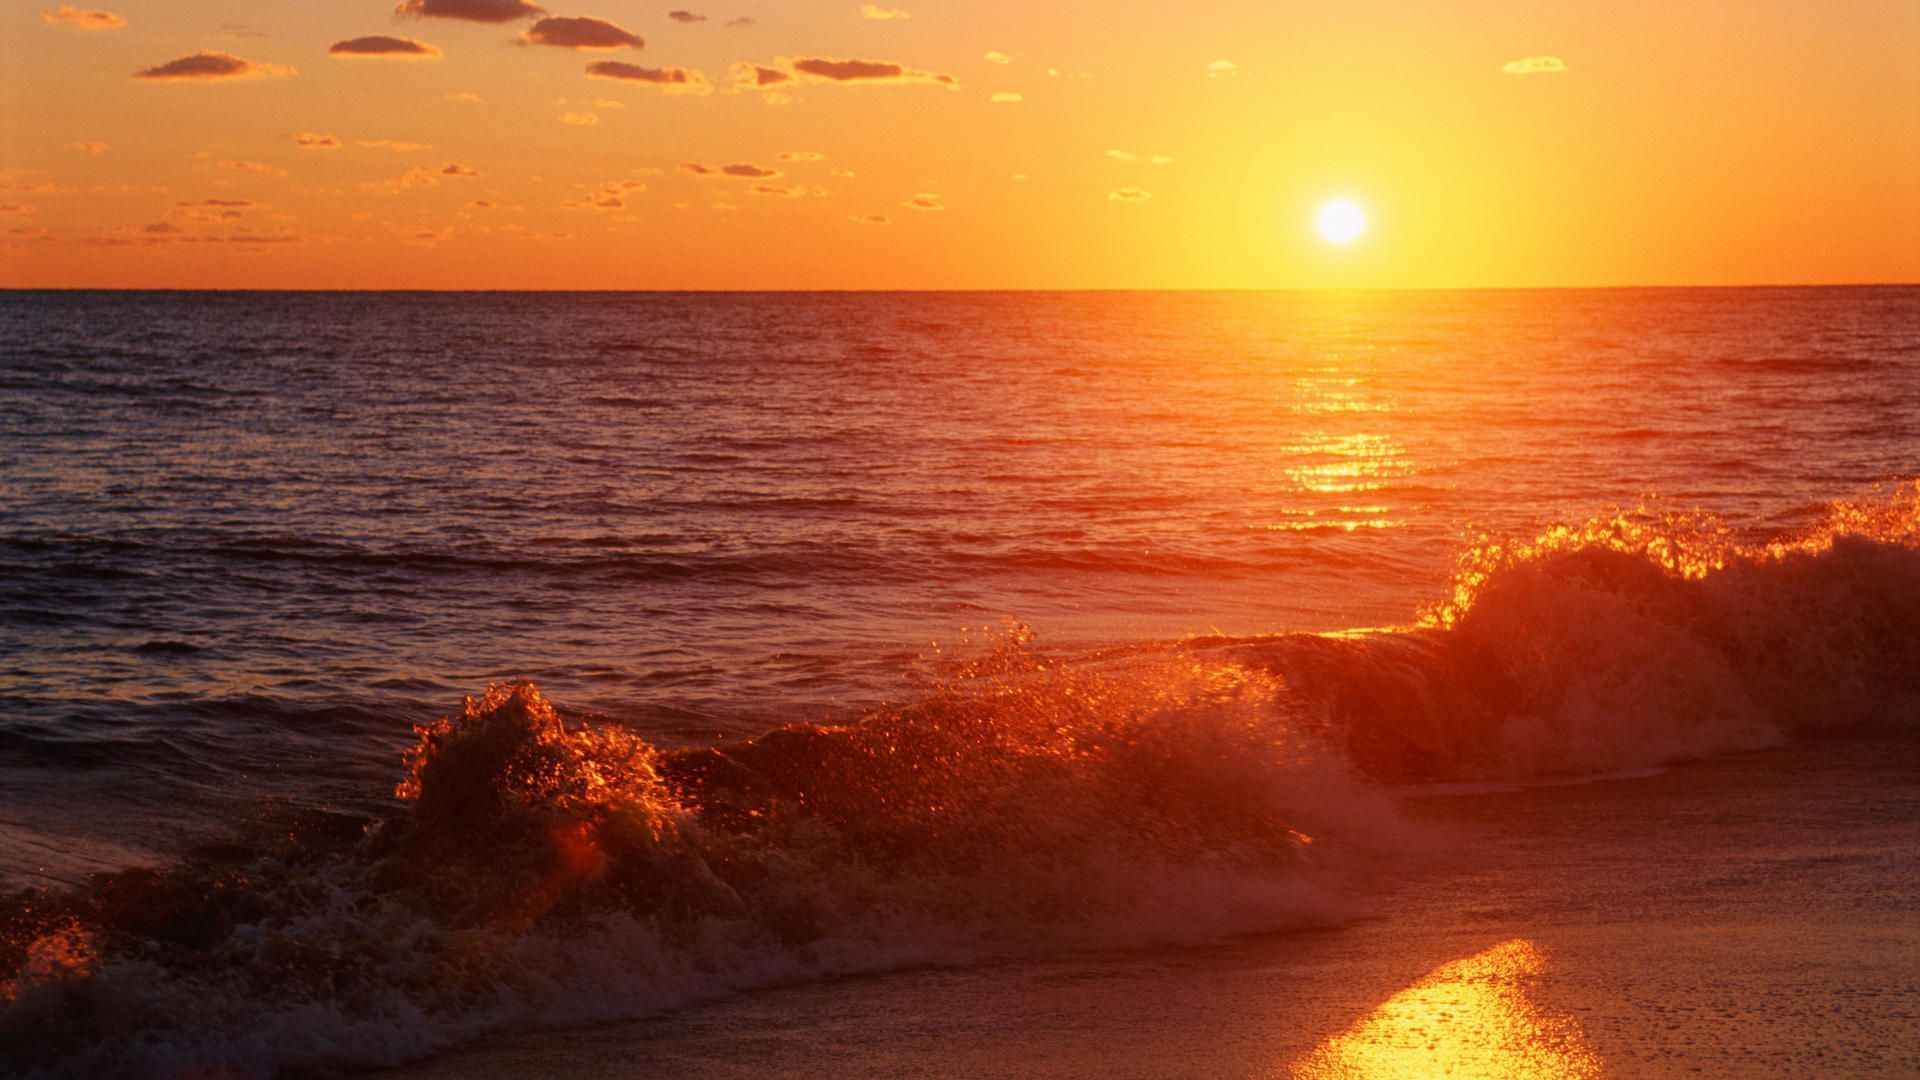 Sunset On The Beach Wallpaper Latest Pictures 1aj9n0c8   Yoanucom 1920x1080